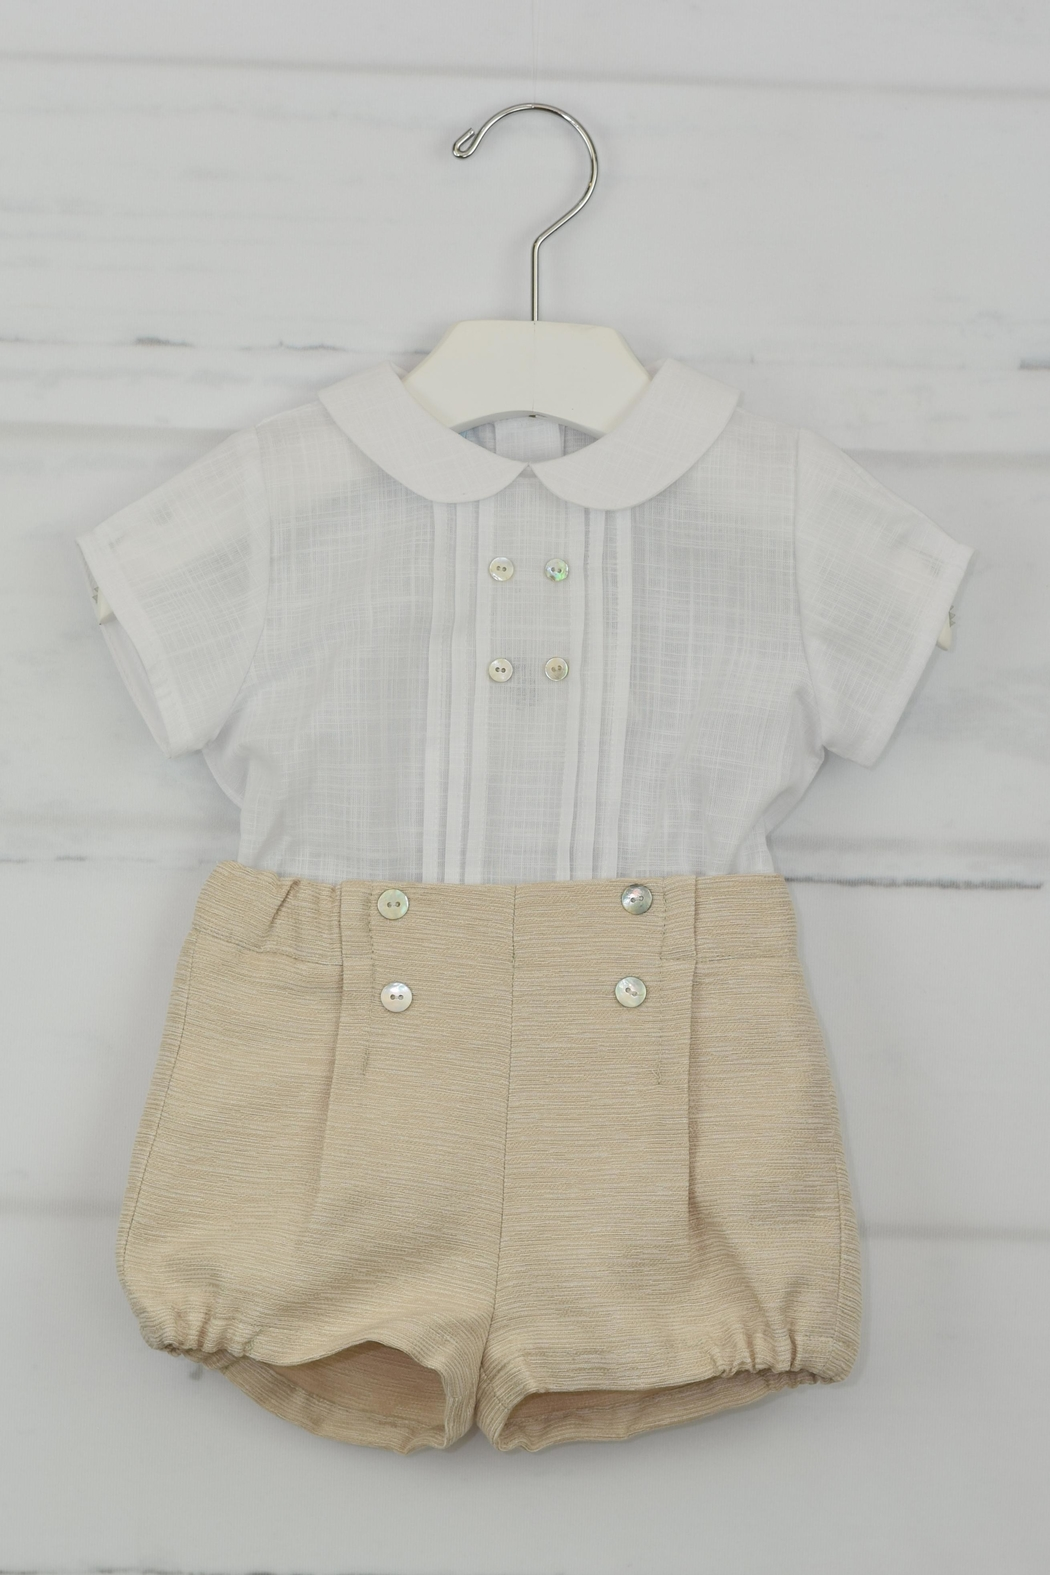 Granlei 1980 White & Beige Outfit - Main Image